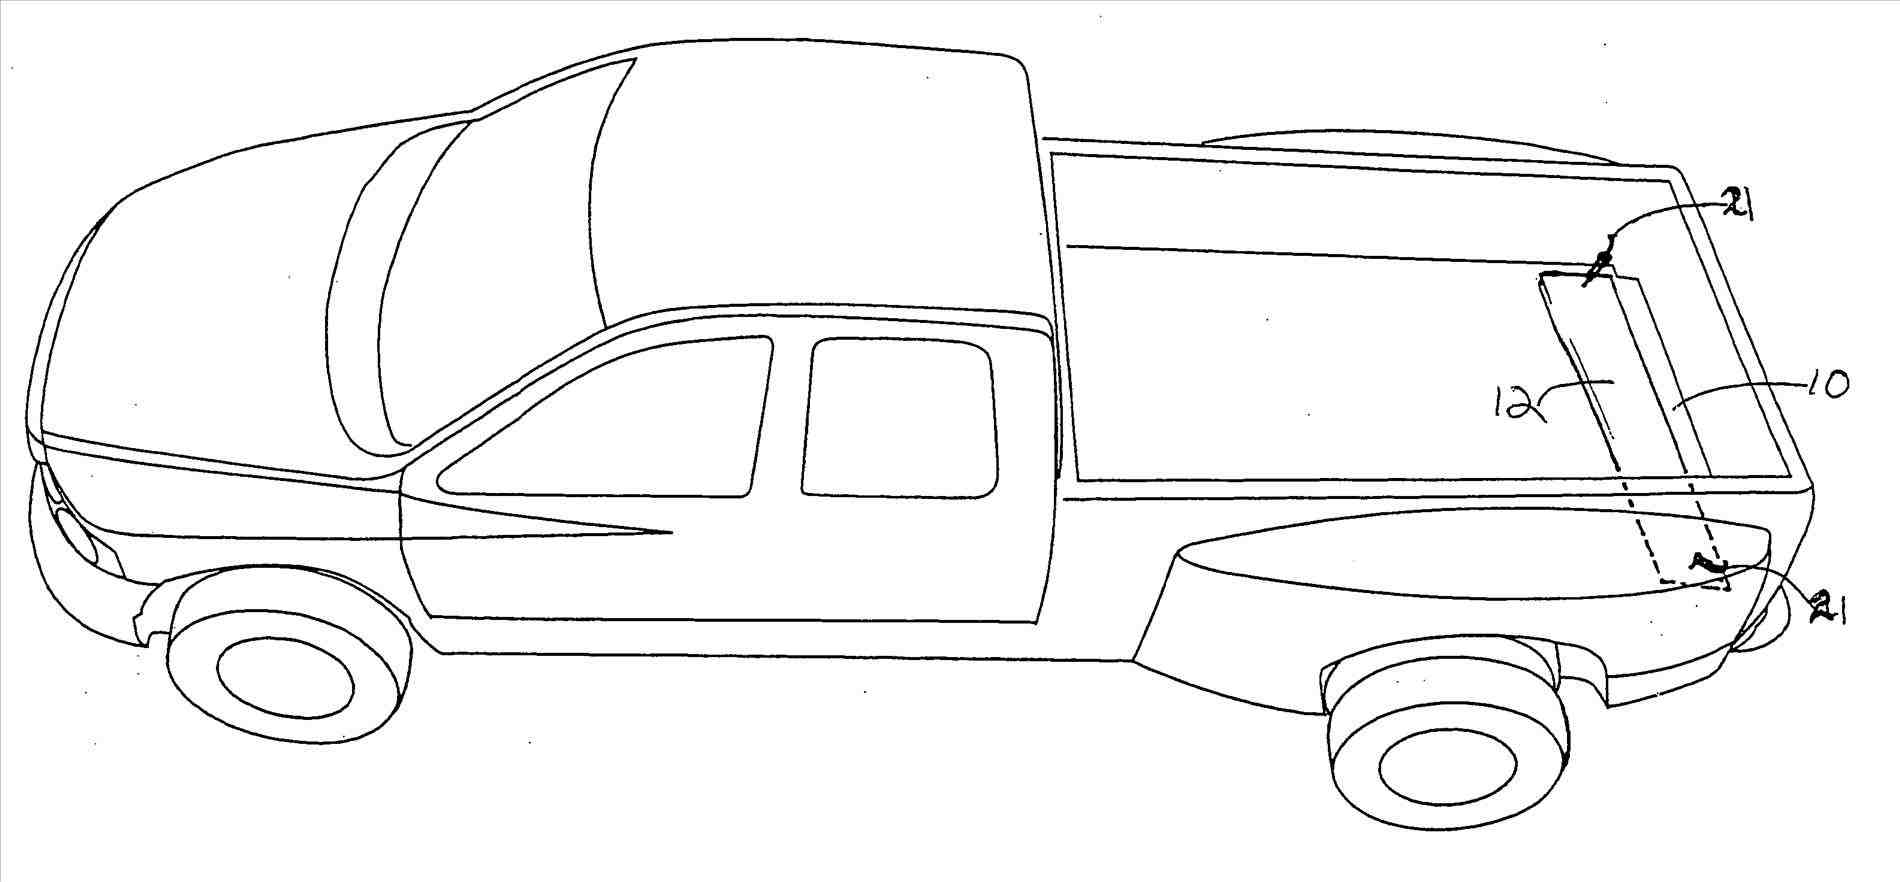 1900x882 Drawing Us Truck Bounce Reducer Google Patents Beautiful Front